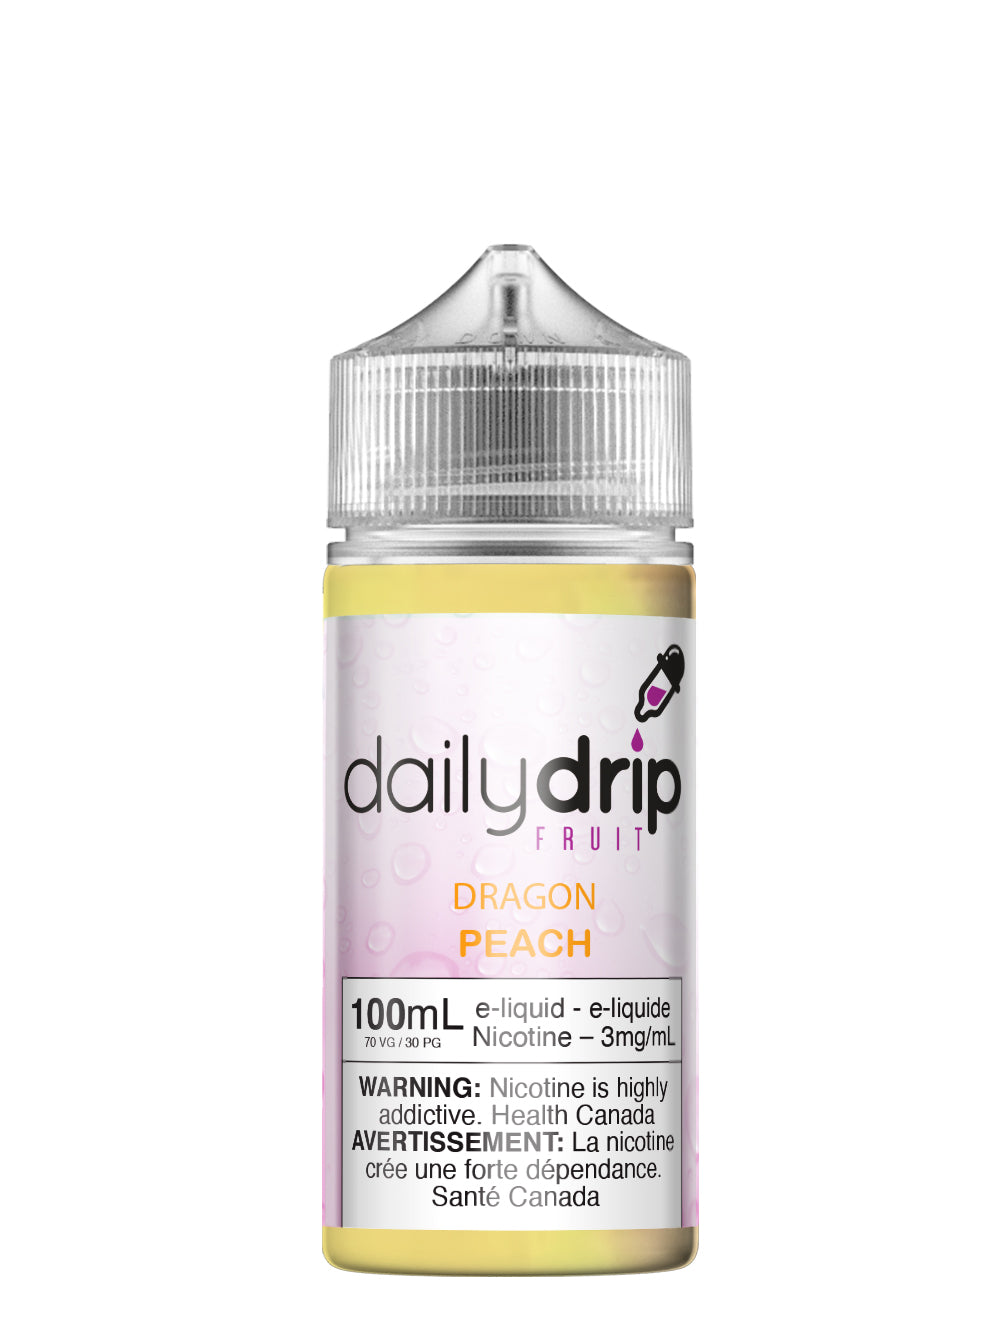 Dragon Peach by Daily Drip 100ml